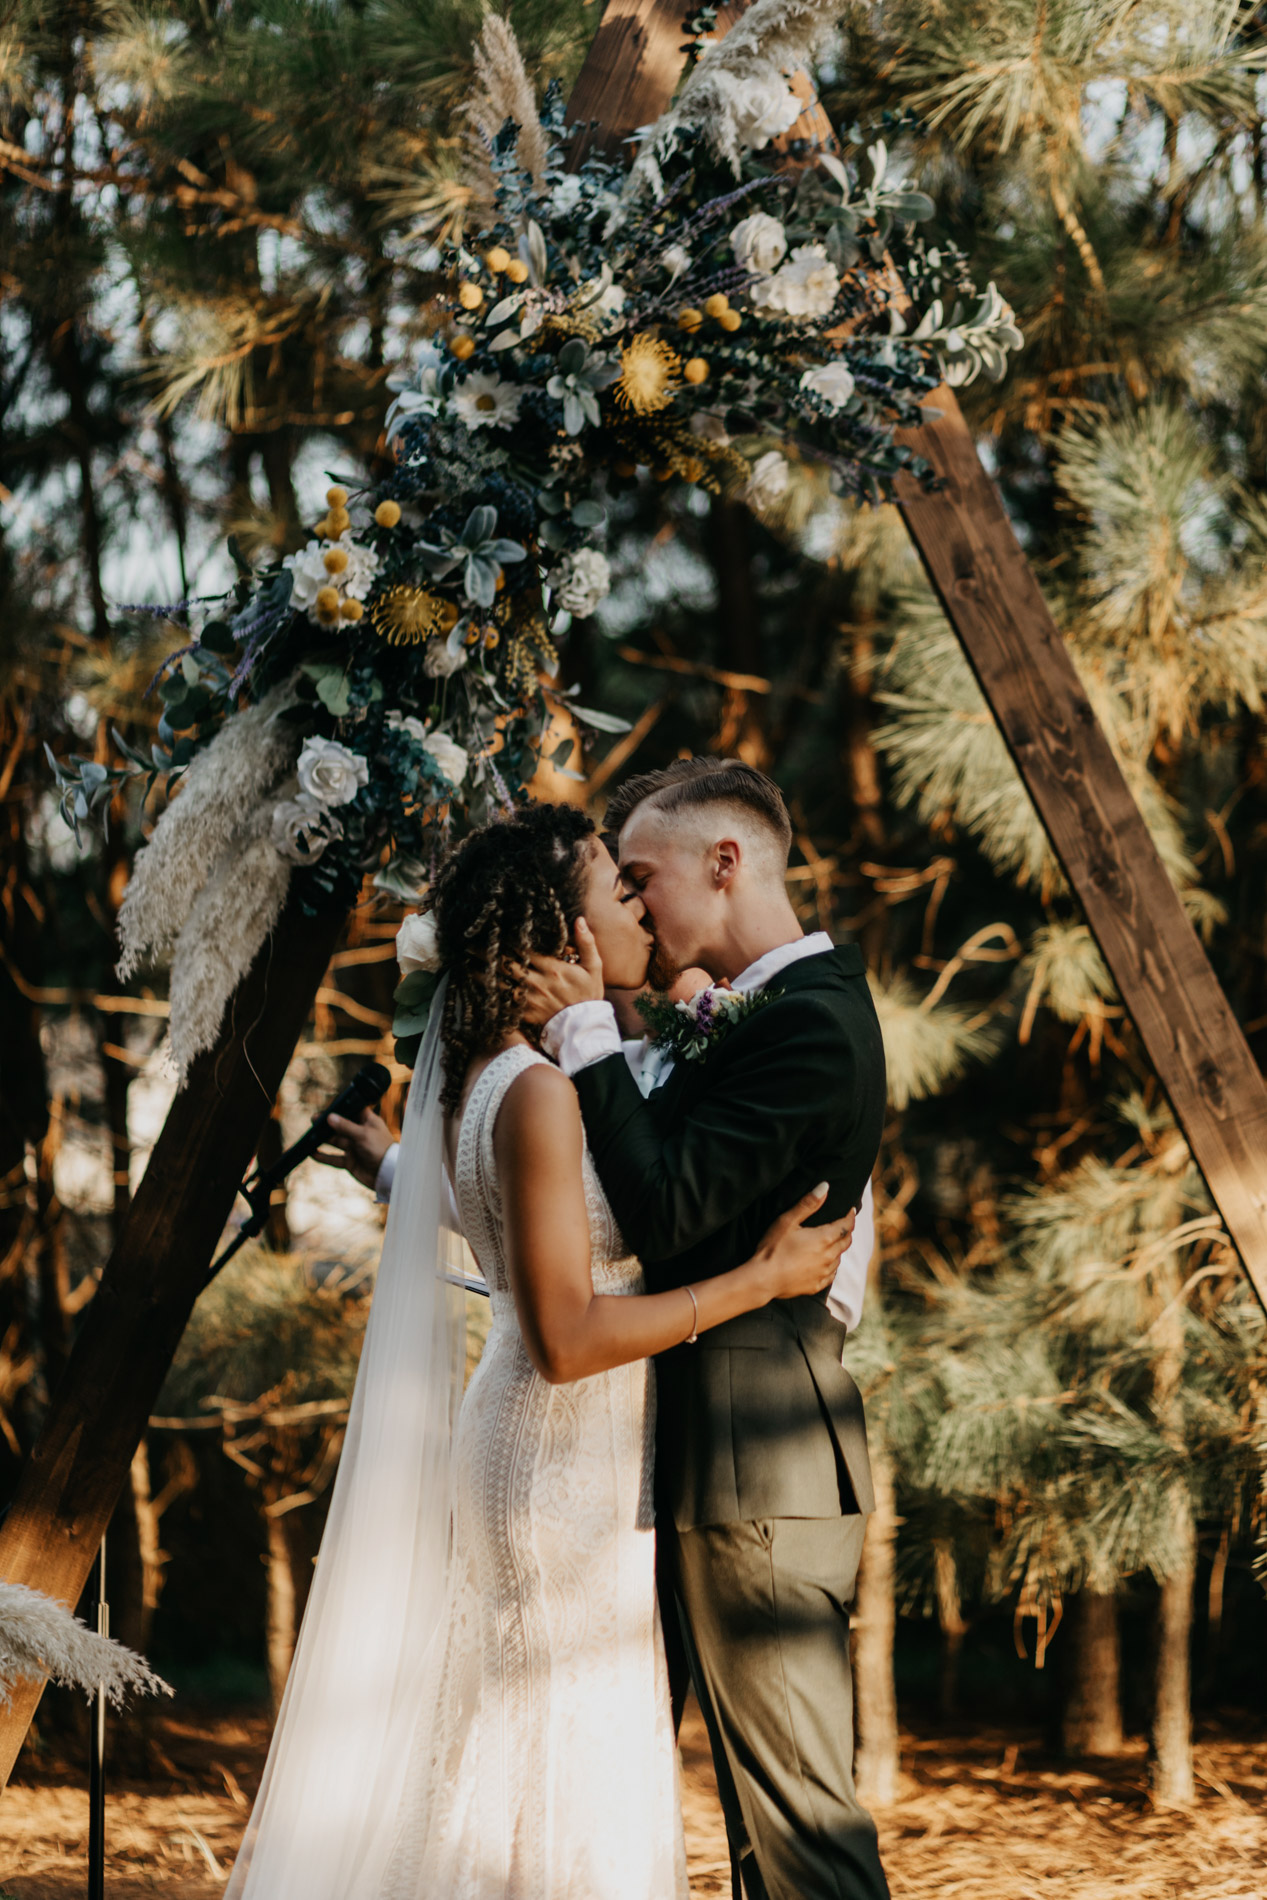 Bride and groom kiss for the first time on their wedding day